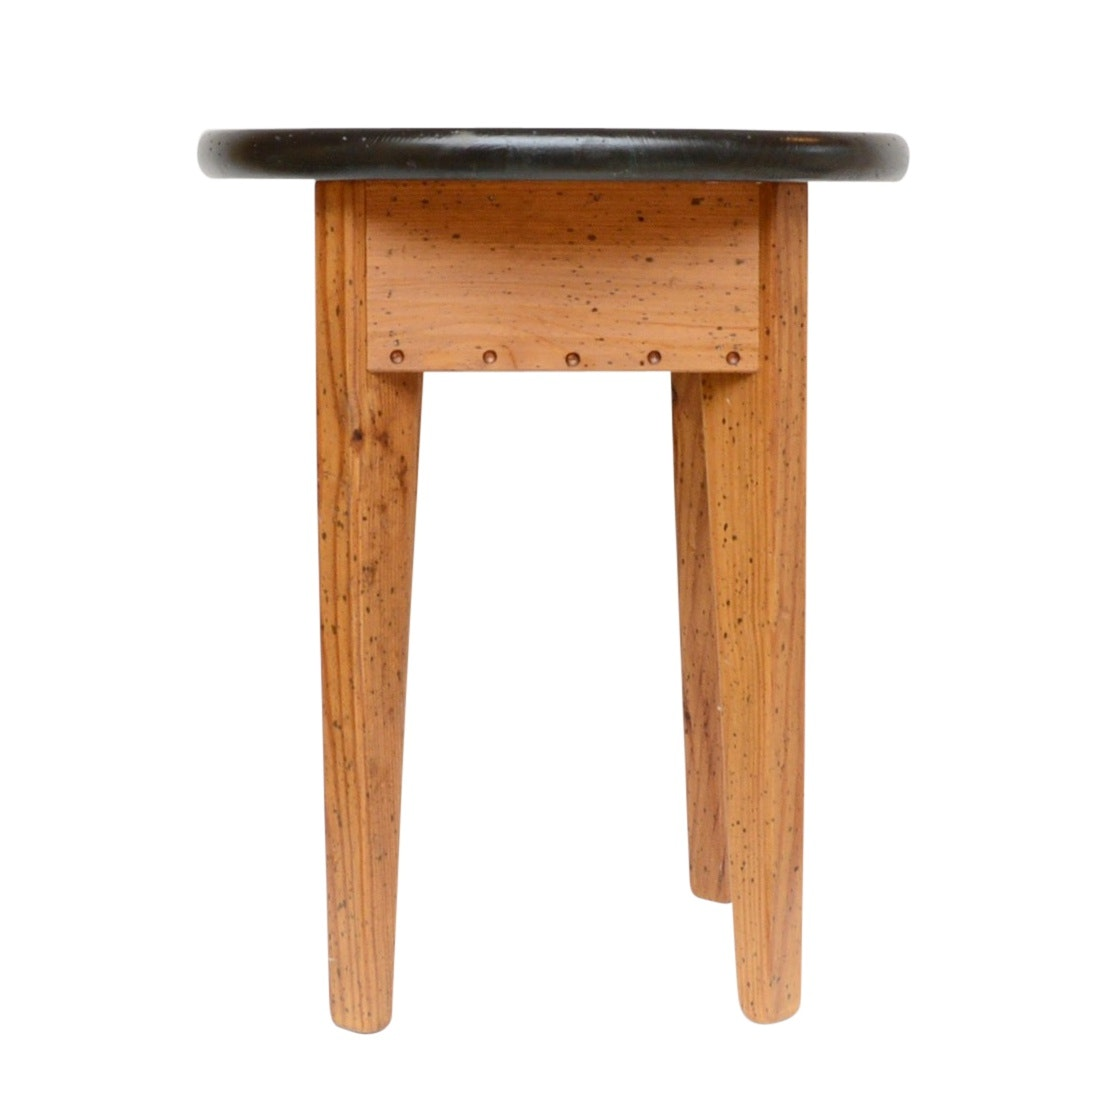 David Marsh Painted Pine Side Table, 20th Century